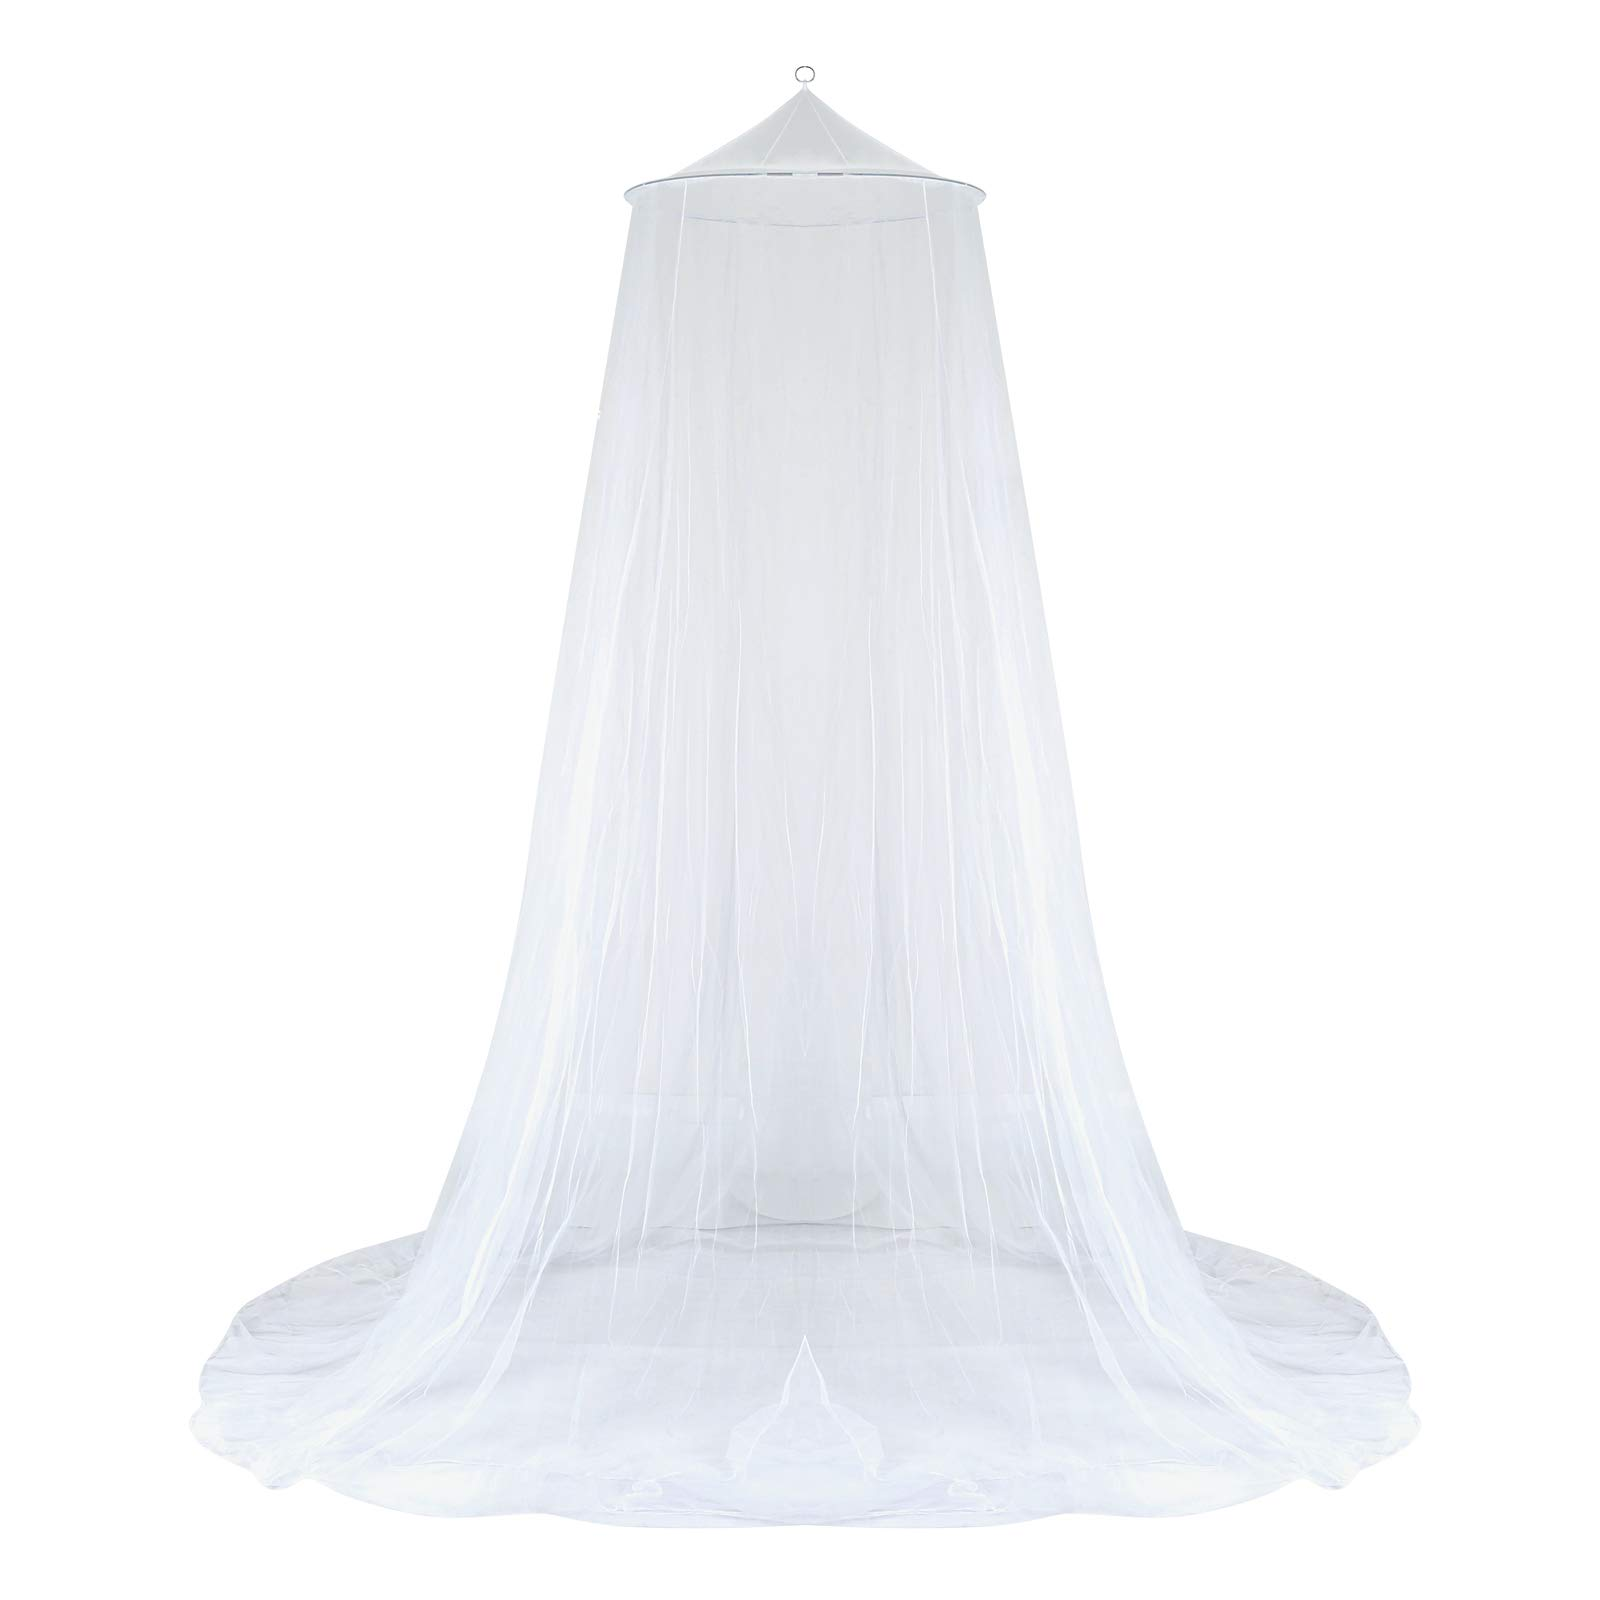 GWHOLE Mosquito Net Bed Canopy for Single to King Size Beds,White